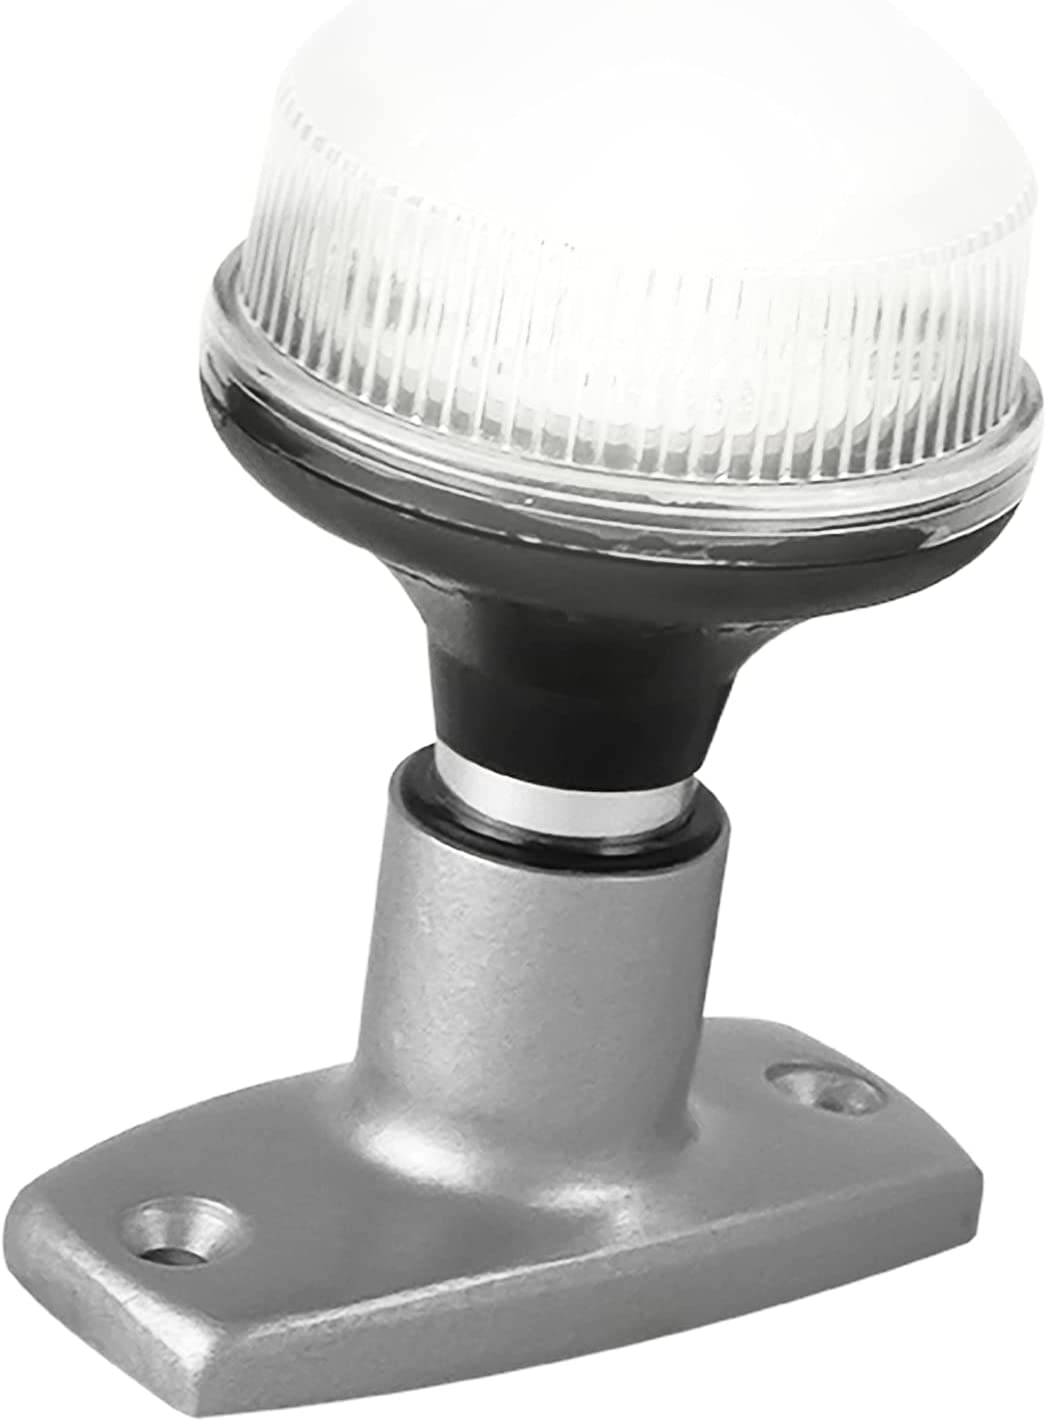 Five free Oceans ! Super beauty product restock quality top! Marine Boat All Round 360 Degree Navigati Anchor LED